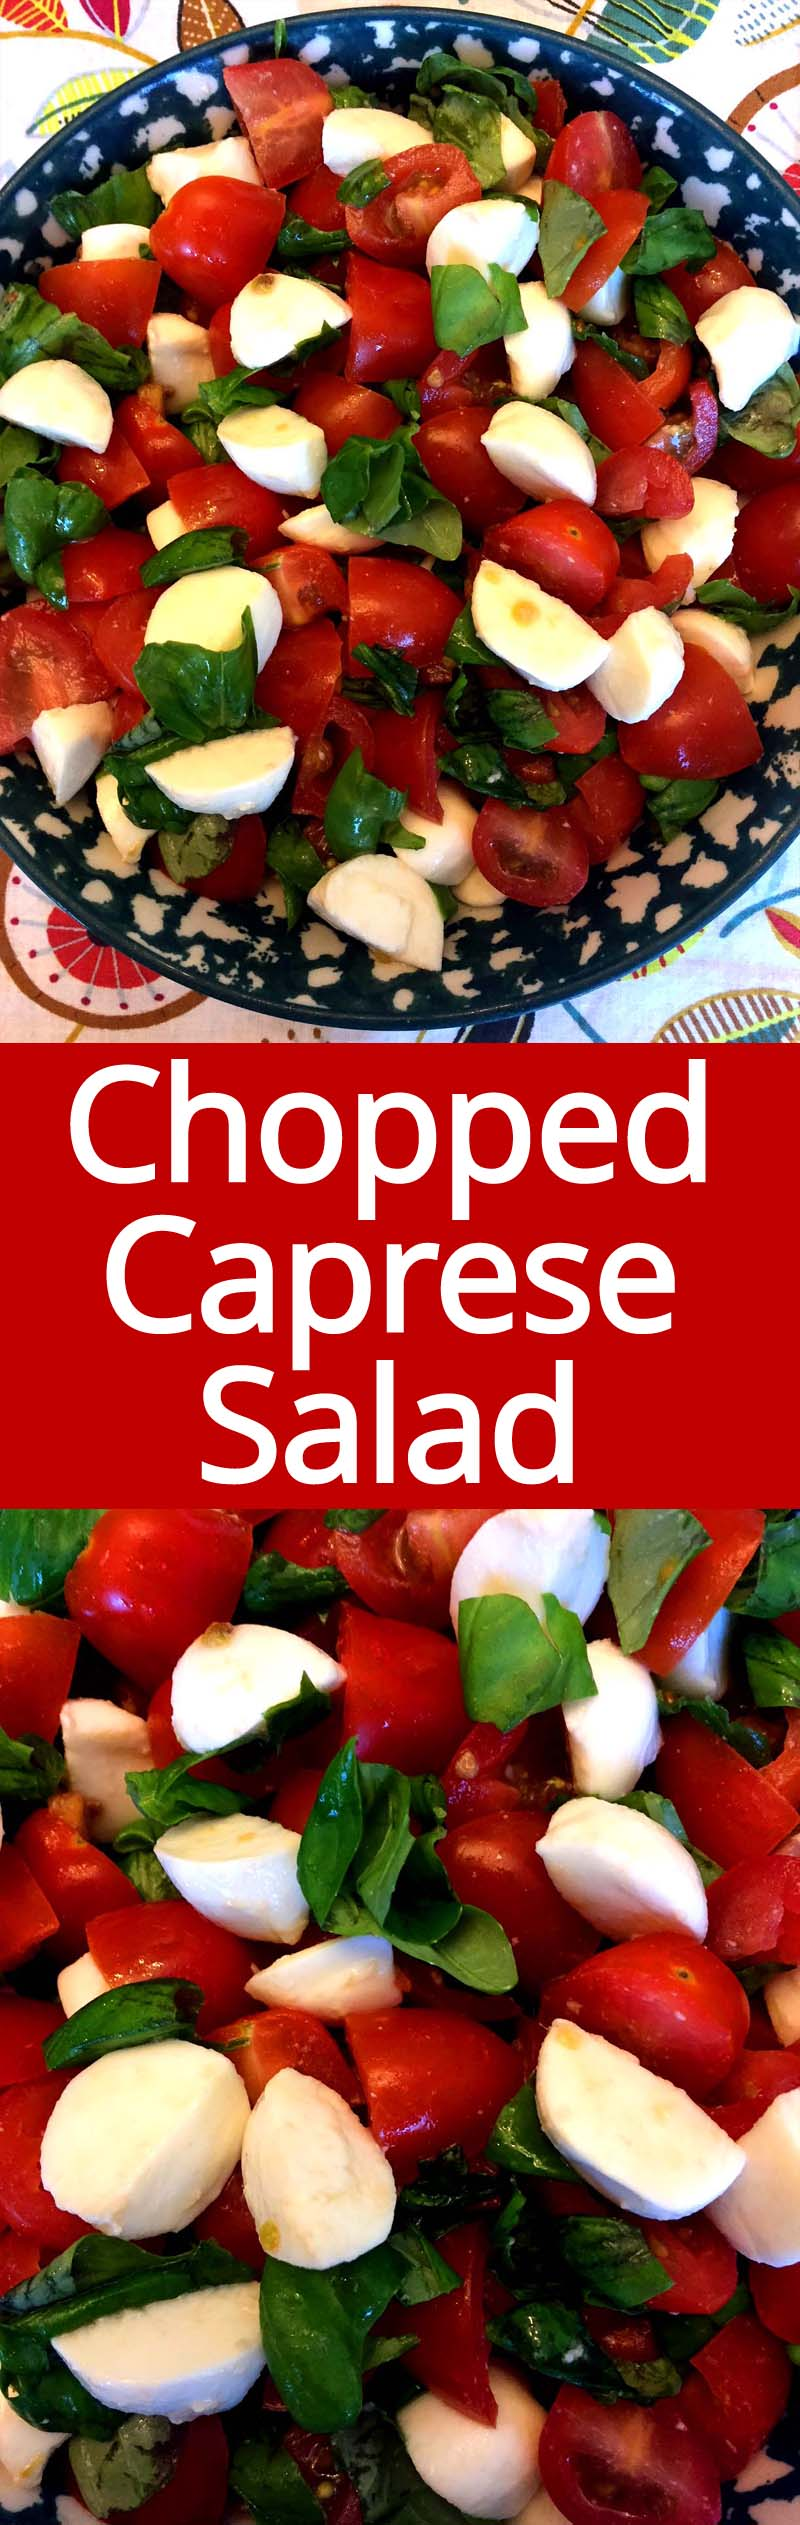 I love Caprese salad, and this chopped version takes it to the whole new level! MOUTHWATERING! Fresh tomatoes, basil and mozzarella - so yummy and refreshing!